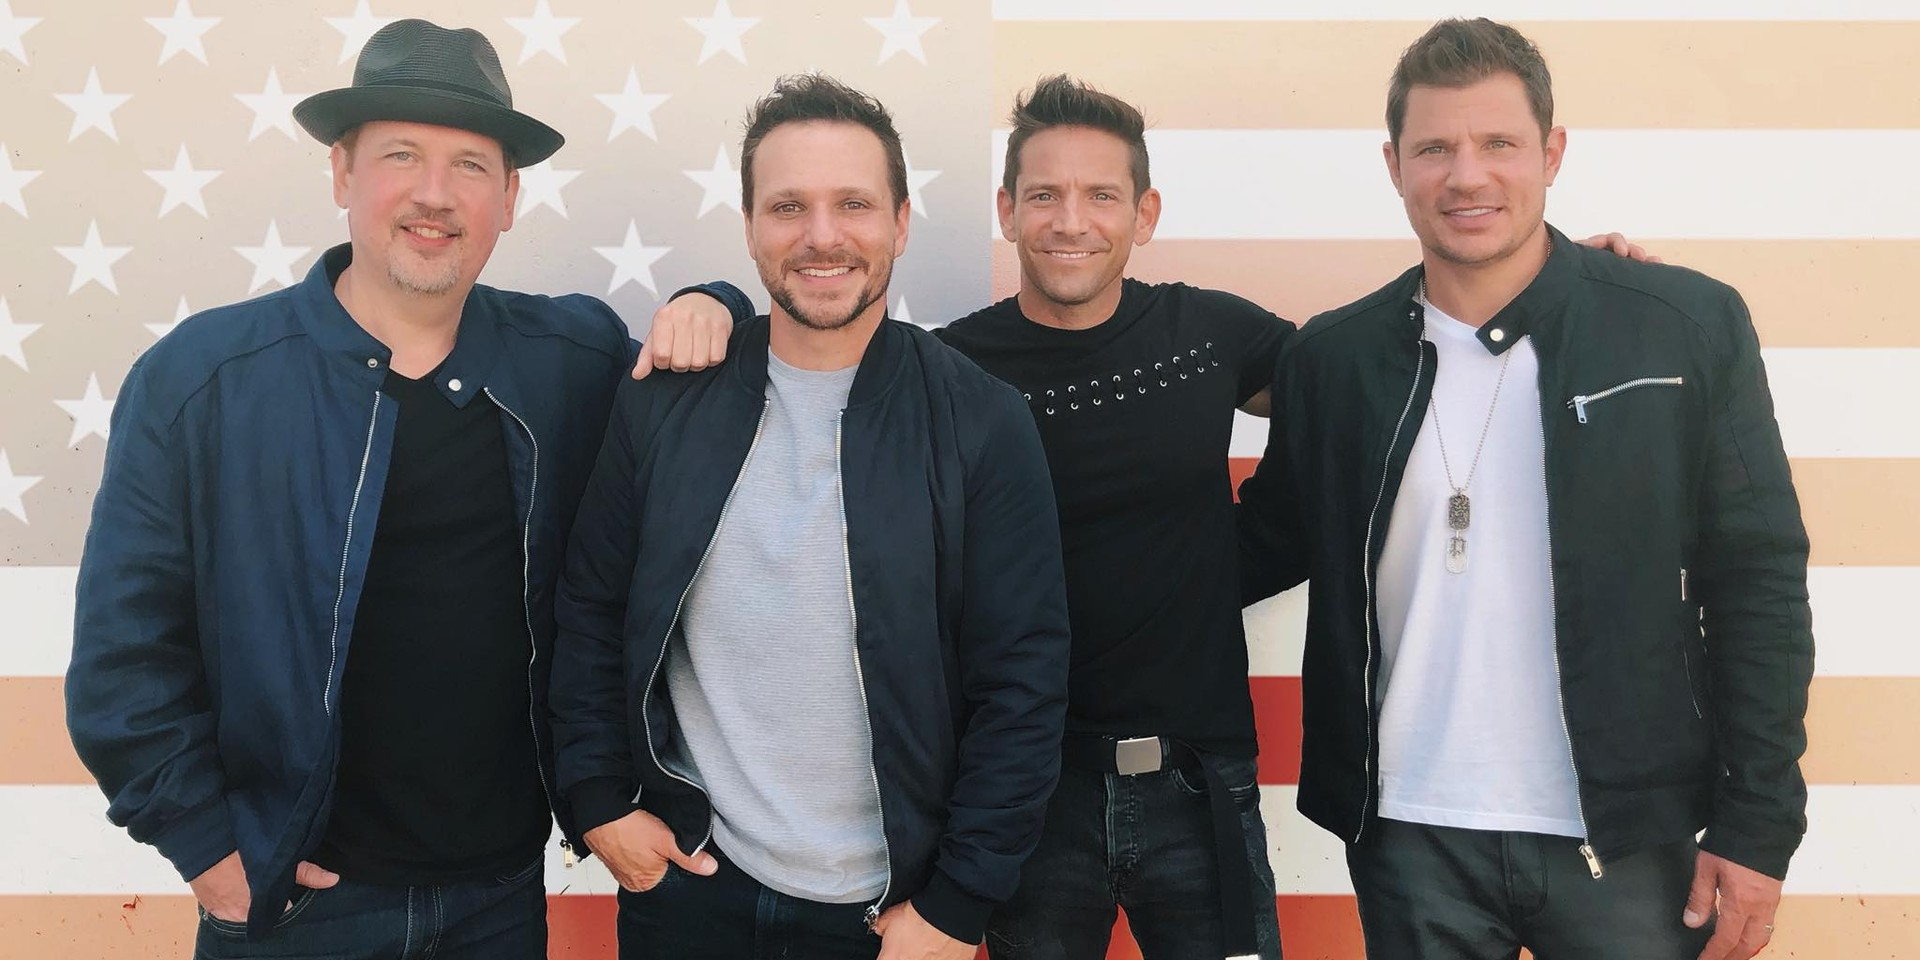 98 Degrees to perform in Singapore in 2020